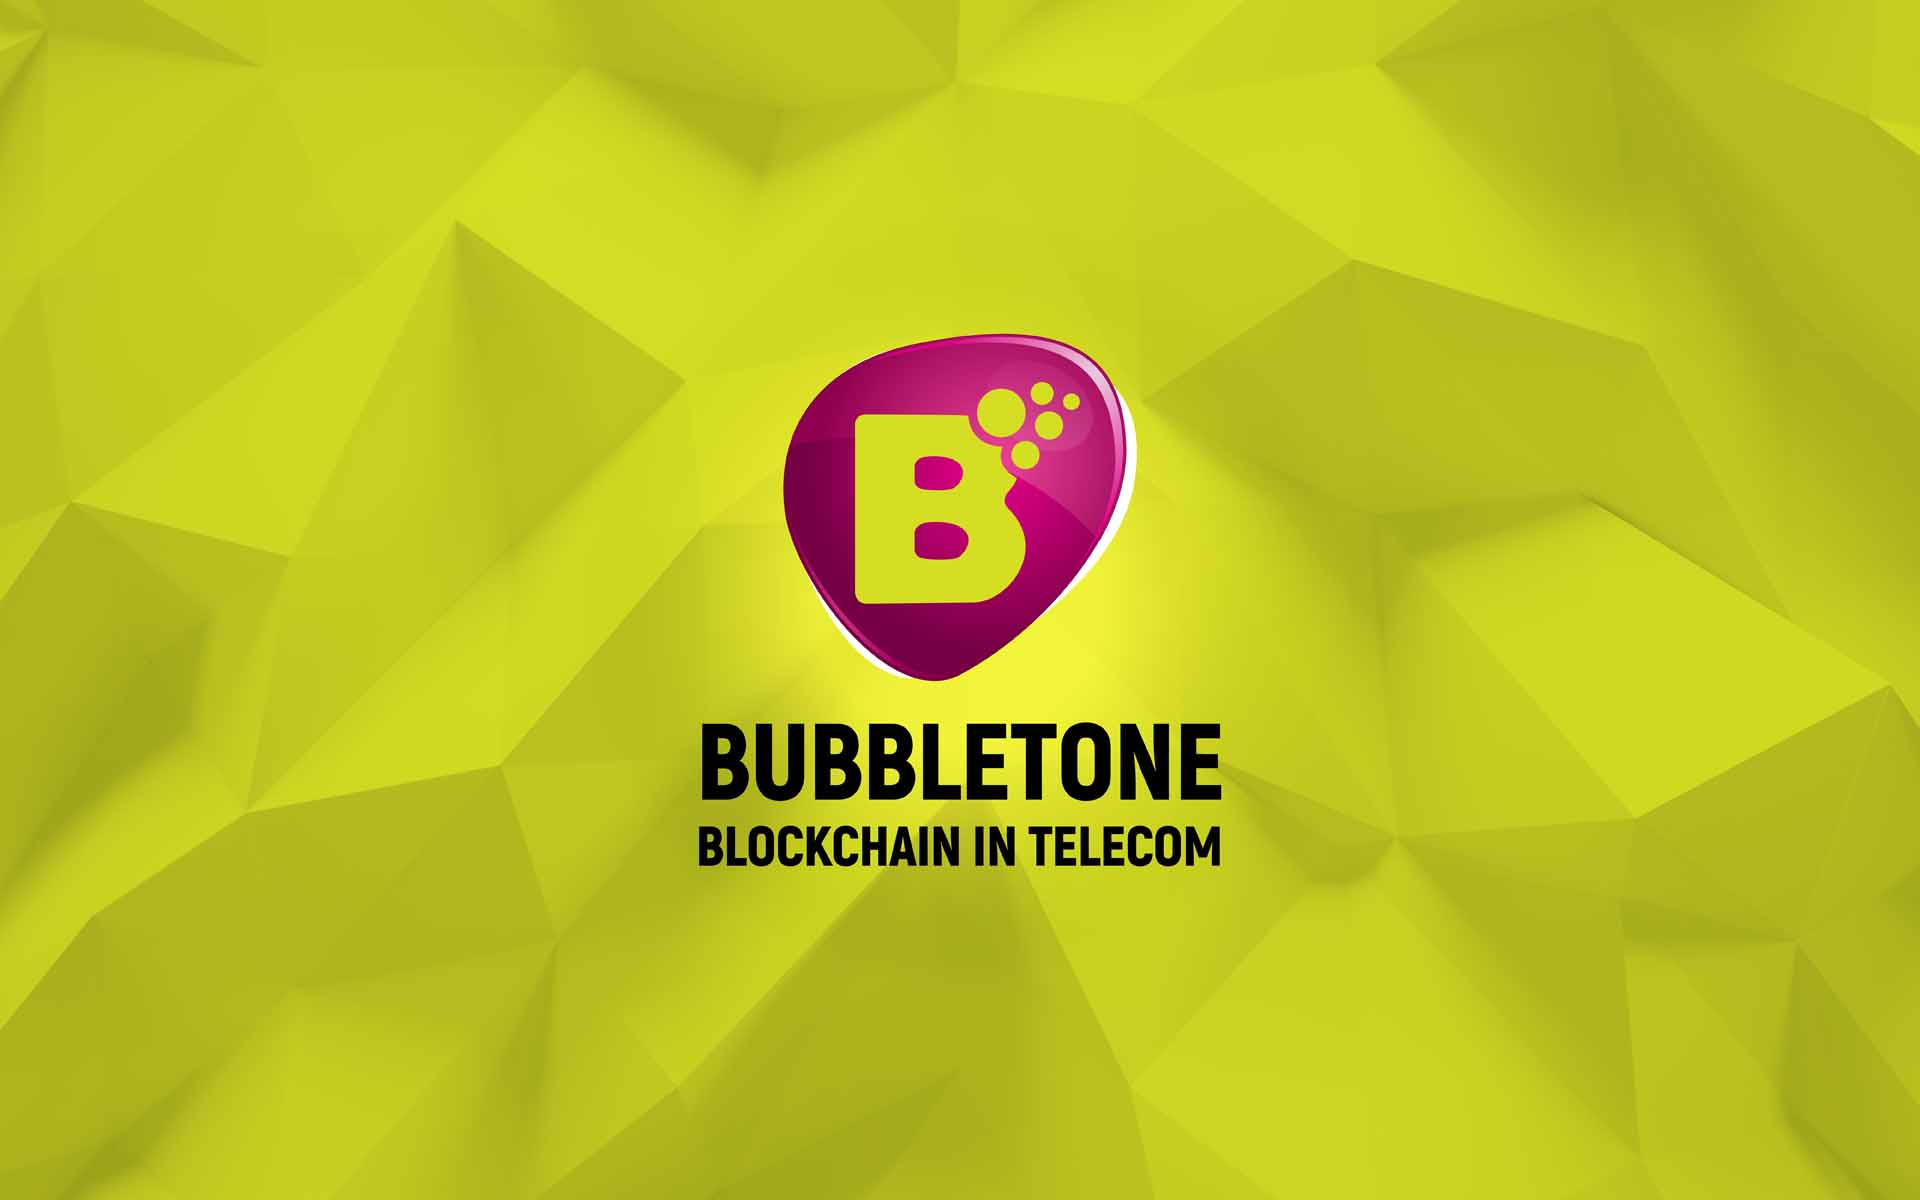 BubbleTone Creates Ultrafast Blockchain to Decentralize Mobile Roaming